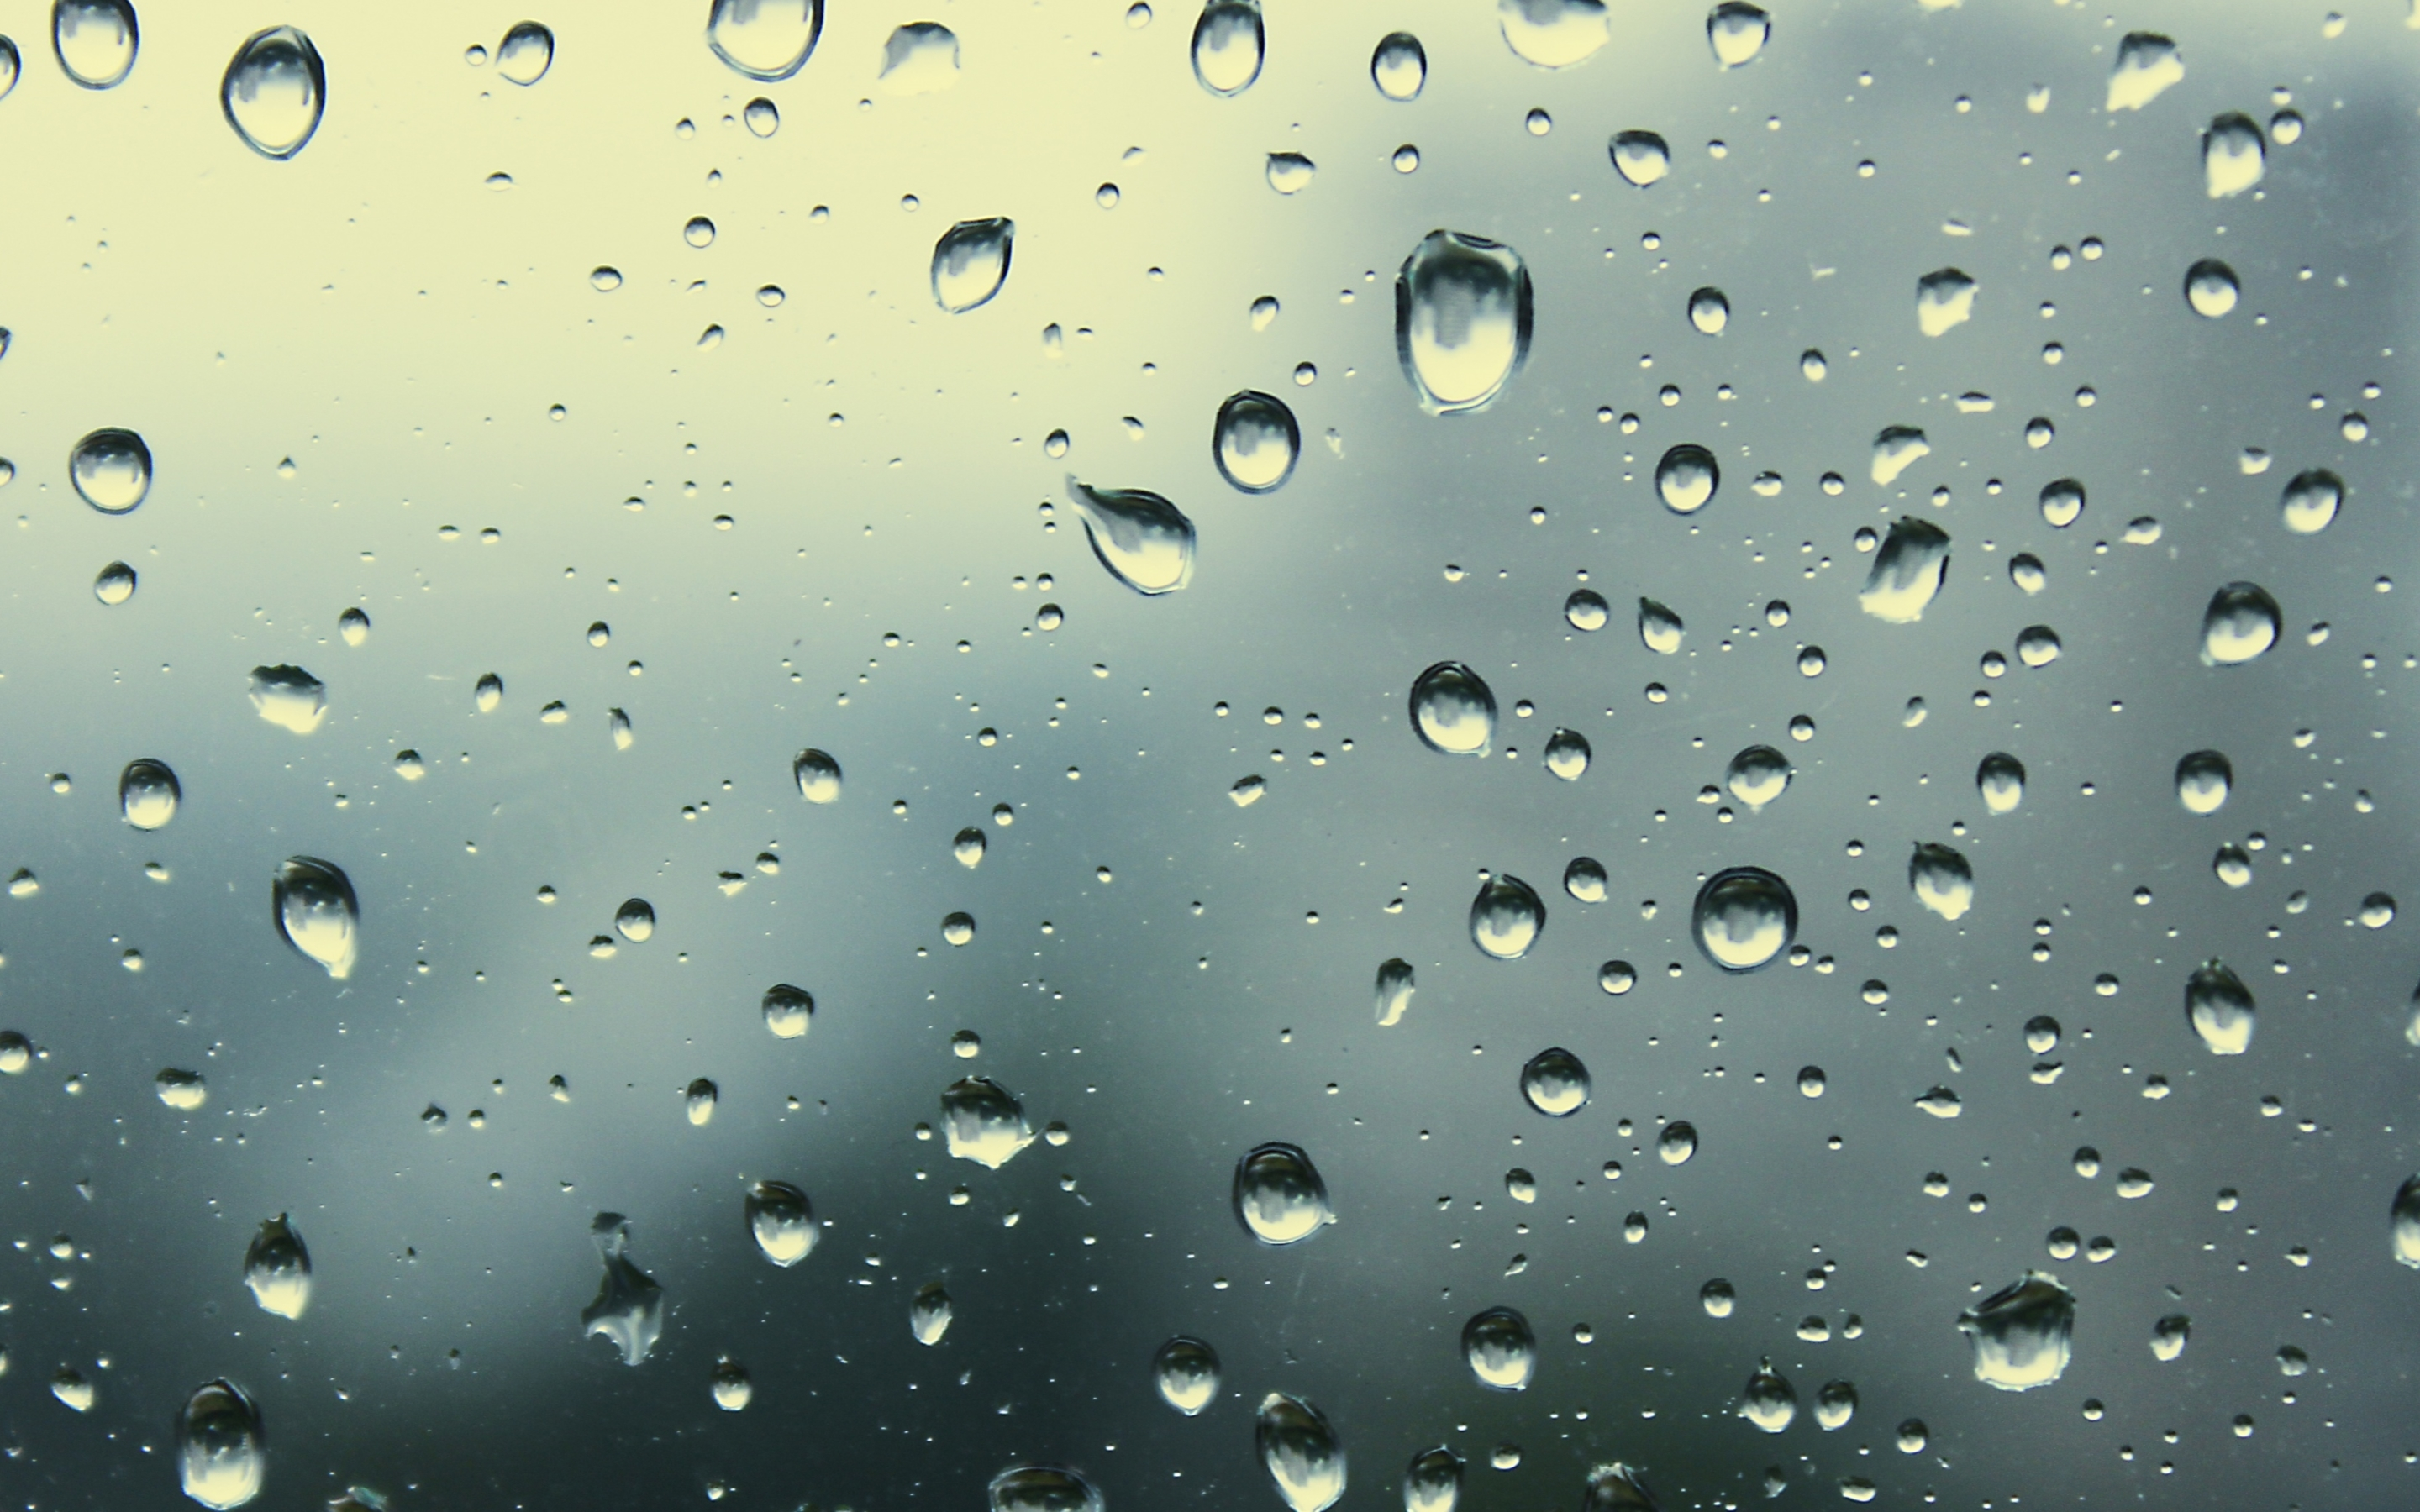 rain drops 5 mac wallpaper download free mac wallpapers